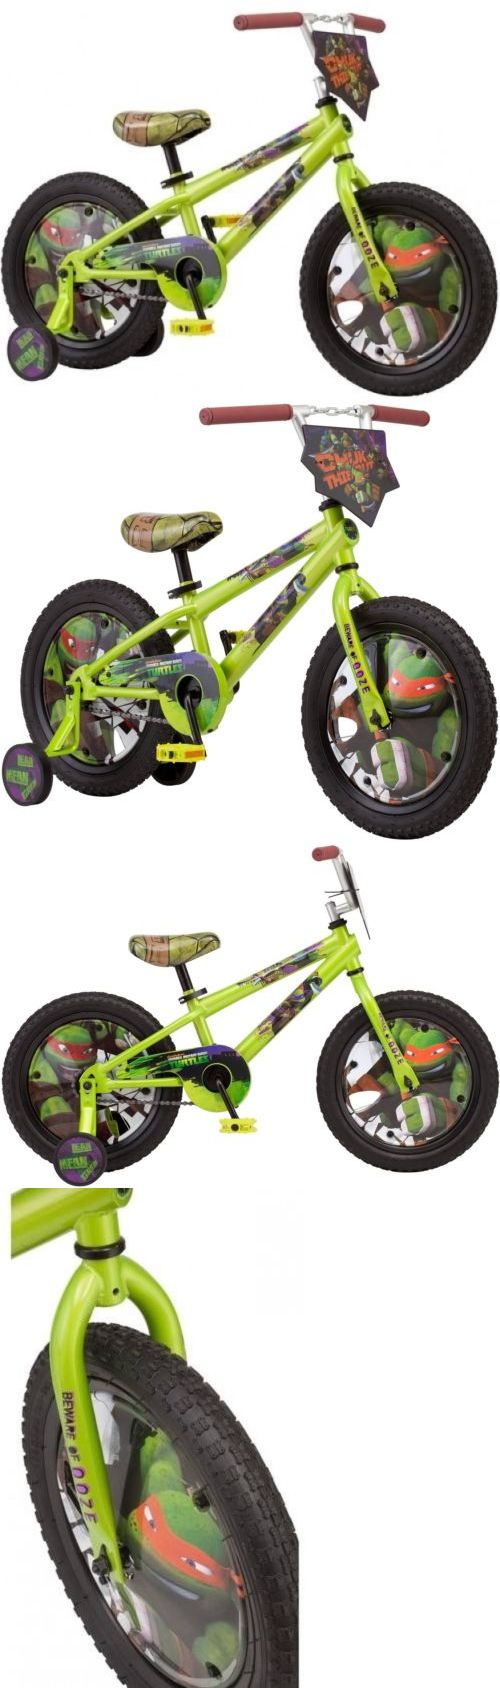 Training Wheels 177839: New 16 Tmnt Boys Kids Bike With Training Wheels, Face Plate And Tube Graphics -> BUY IT NOW ONLY: $81.99 on eBay!